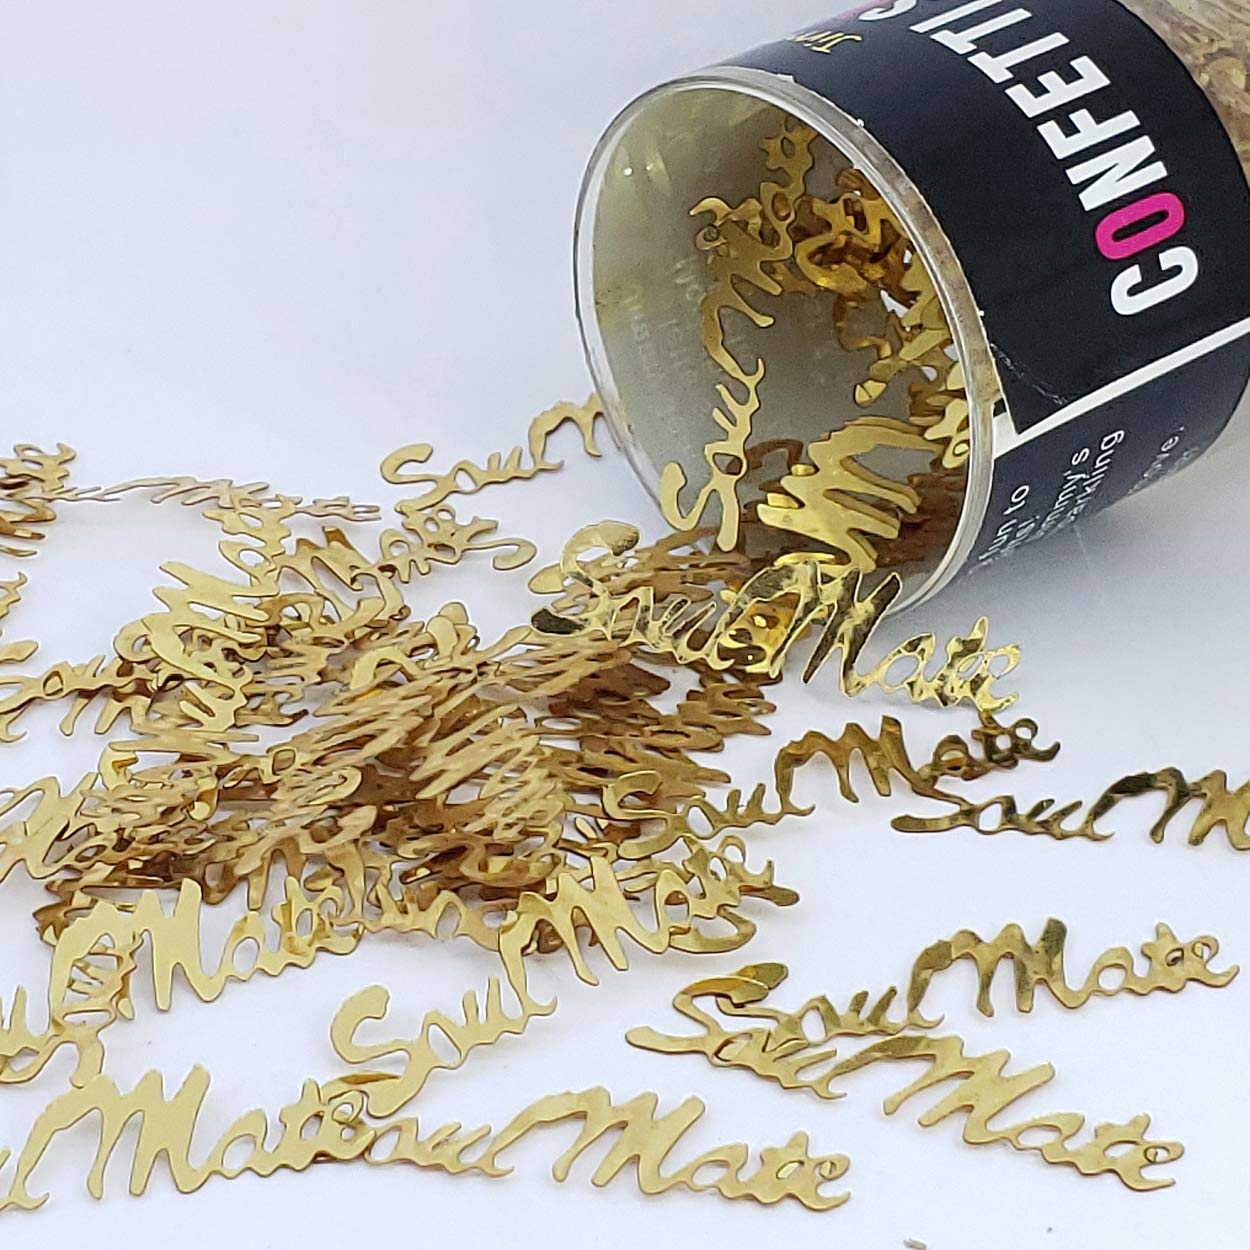 Confetti Word Soul Mate Gold - One Pound (16 oz) Free Priority Mail (7717) by Jimmy Jems (Image #1)